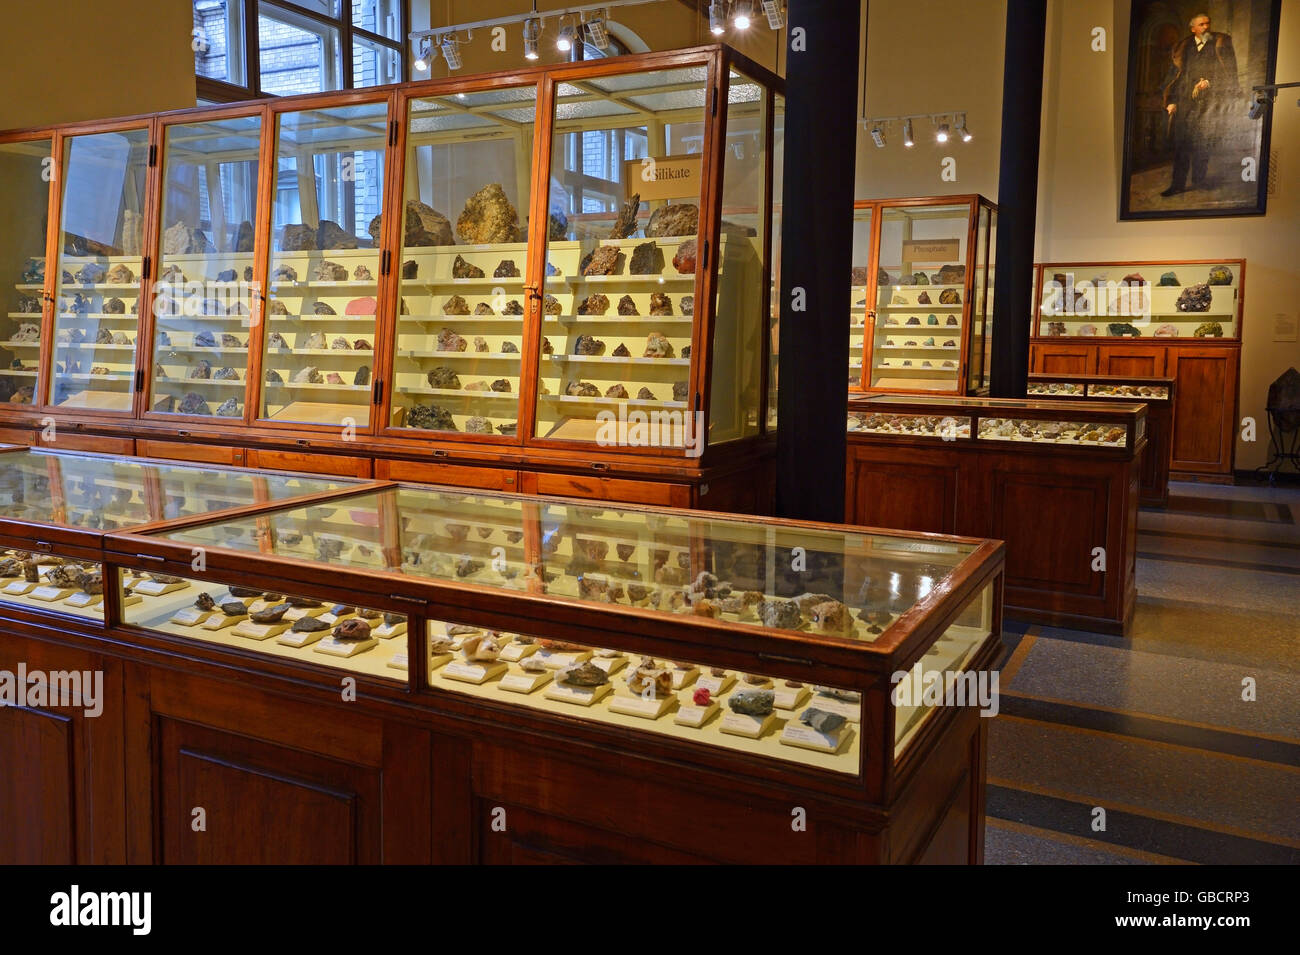 minerals in historical glass cabinets, museum of natural history, Berlin, Germany - Stock Image